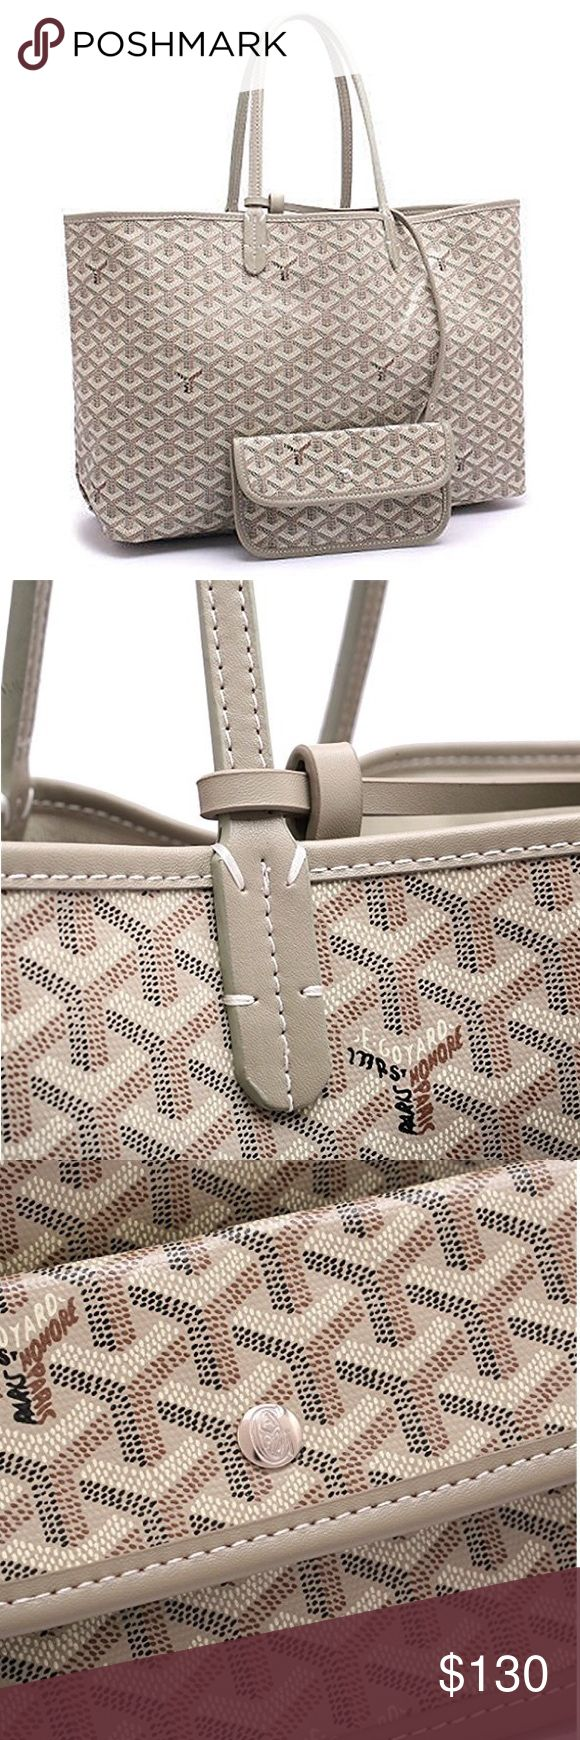 Goyard tote St. Louis PM light beige. This bag is brand new with tags still in dust bag. Price reflects authenticity. goyardd Bags Totes